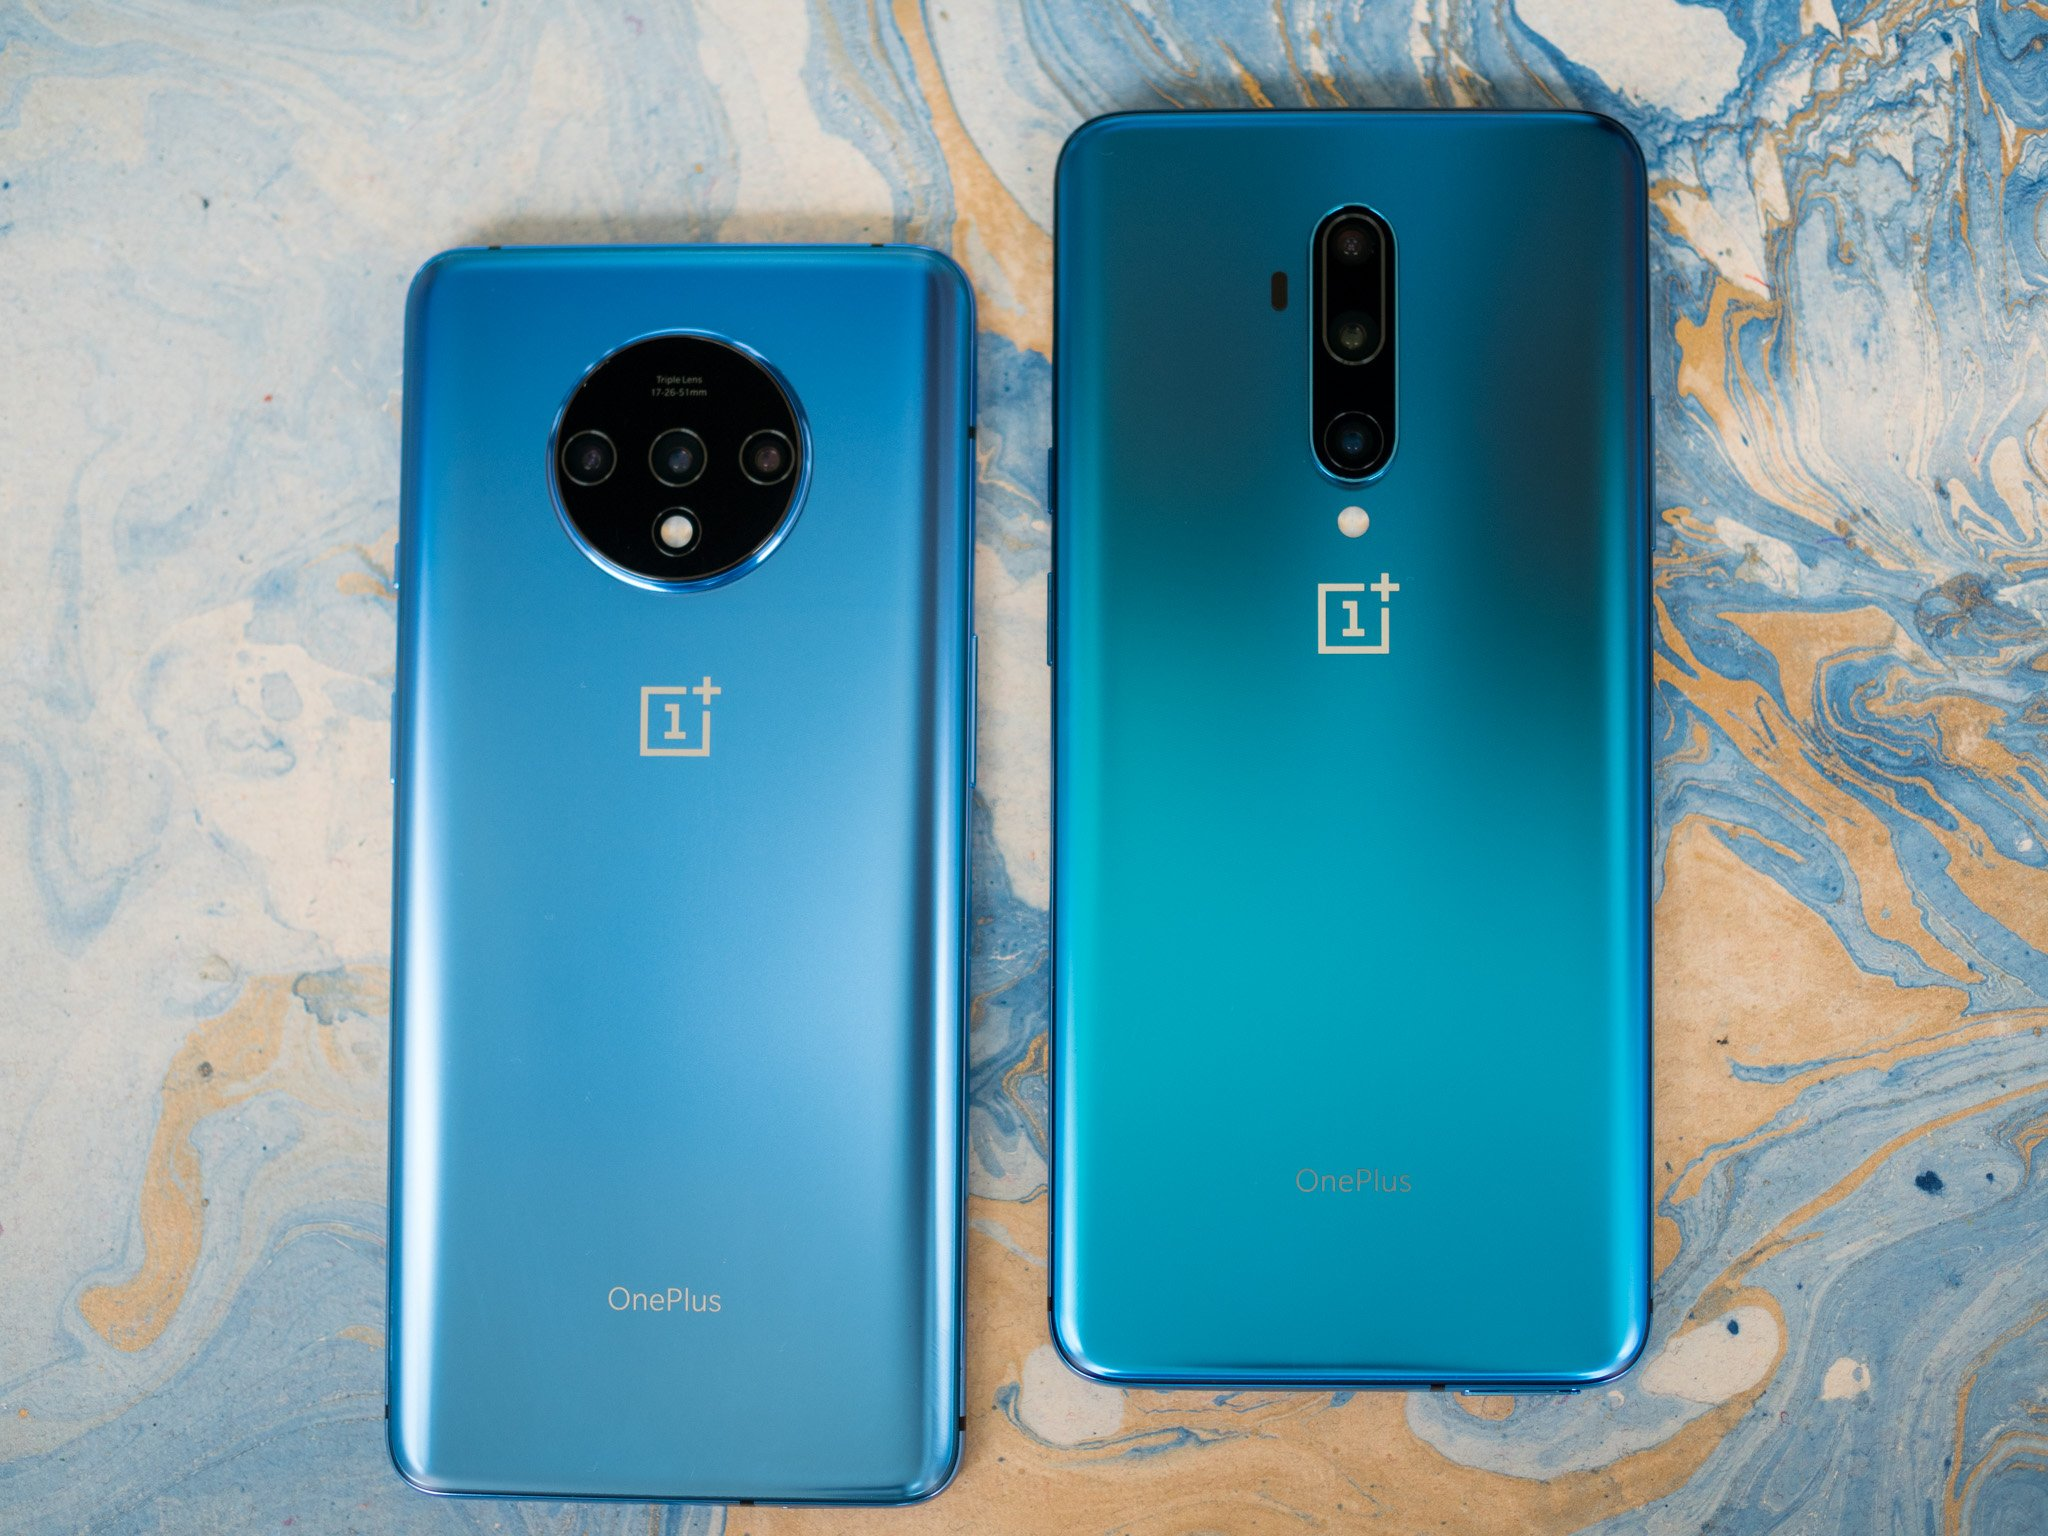 Oneplus 7t Vs Oneplus 7t Pro Which Should You Buy